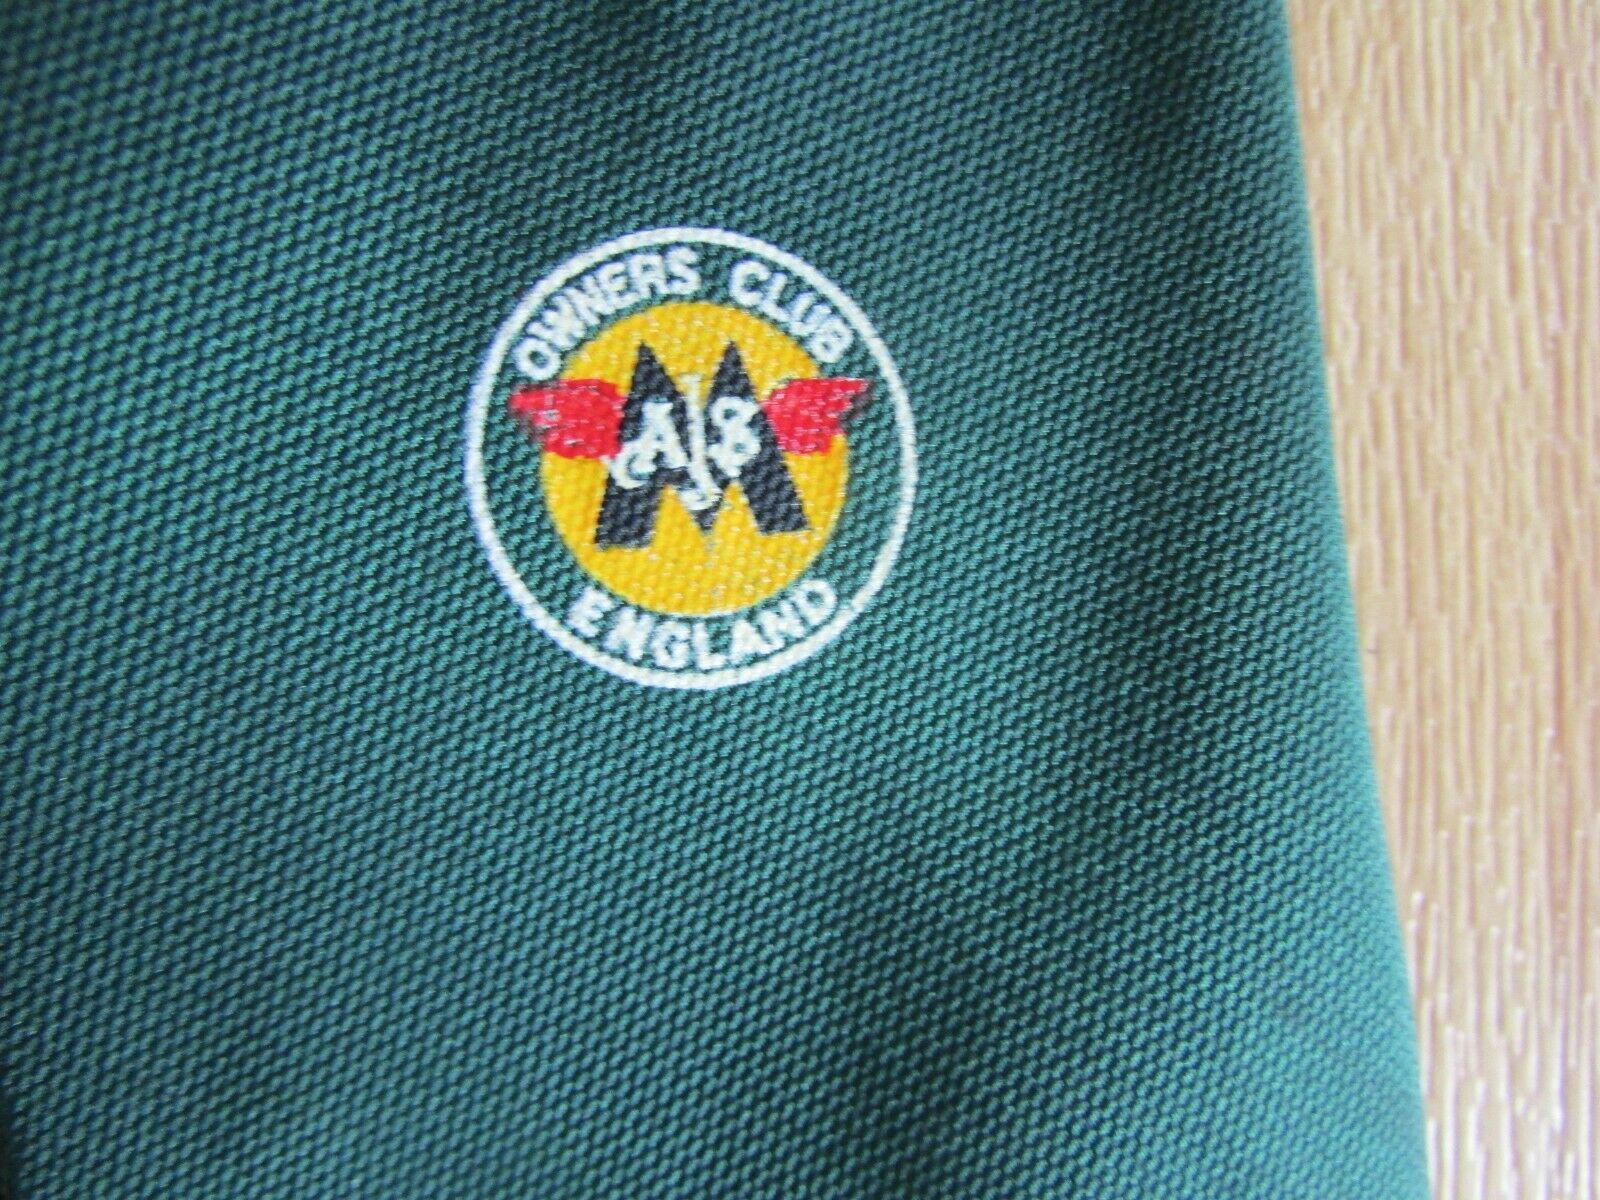 AJS Owners Club England Classic Motor Cycle / Bike Tie by Rawlins Organisation